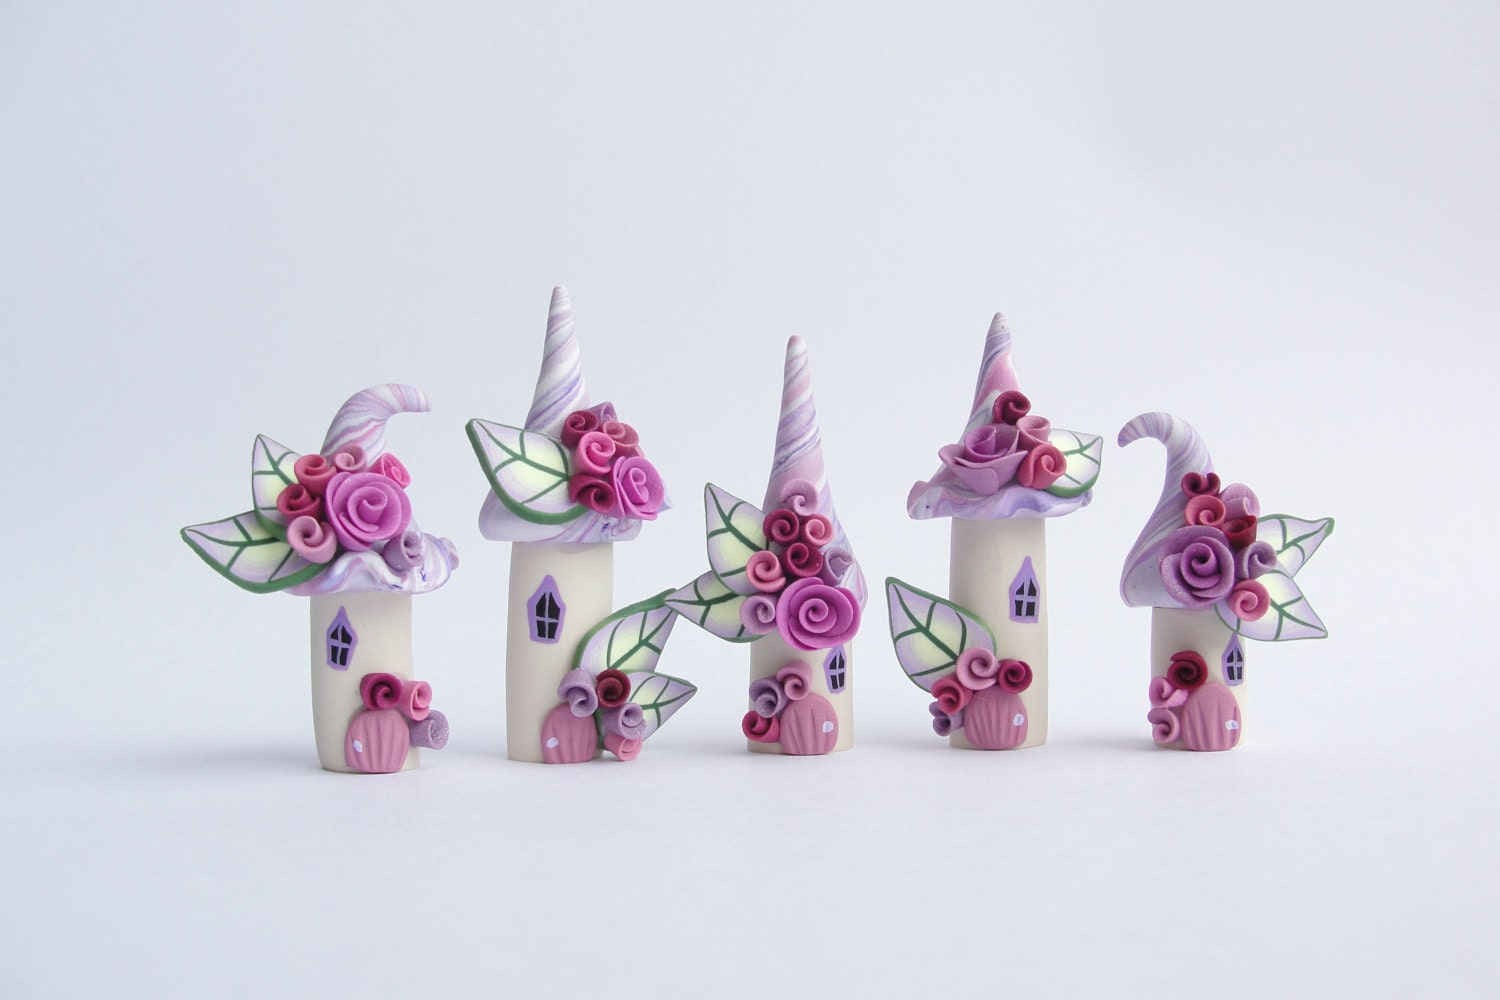 Miniature fairy village in lilac and deep pink colours handmade from polymer clay - fizzyclaret